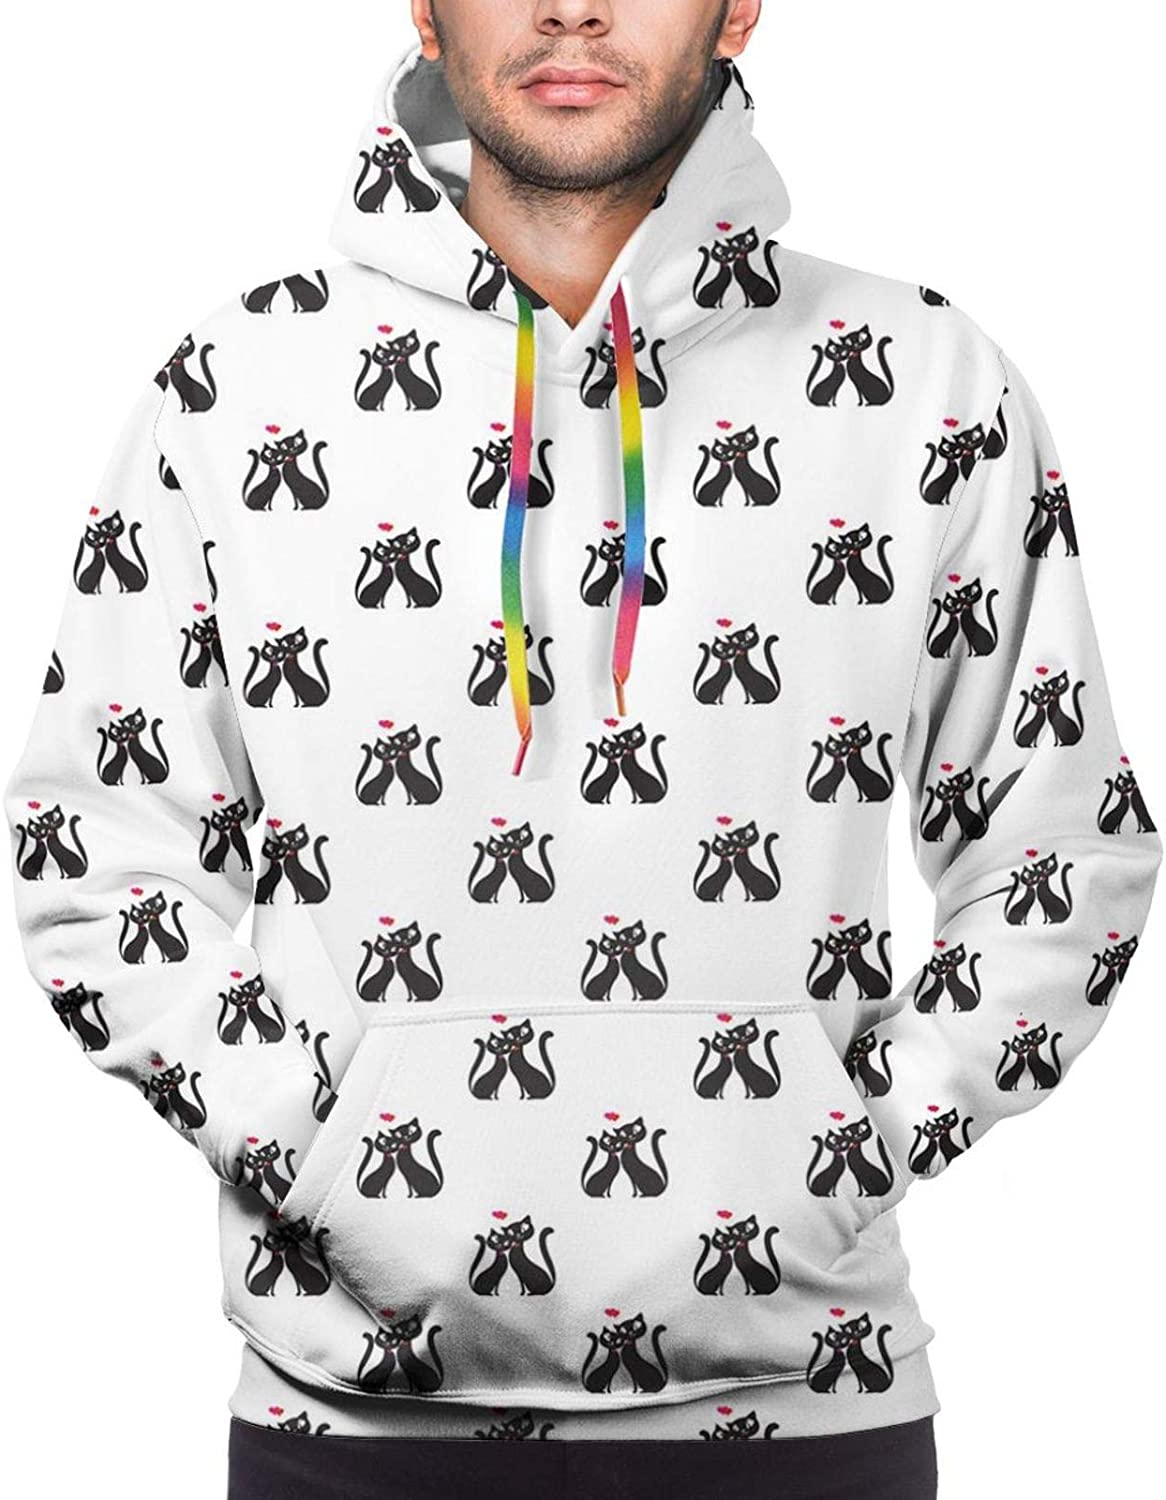 Men's Hoodies Sweatshirts,Romantic Couple of Cats in Love Cute Hearts Valentines Togetherness Happiness